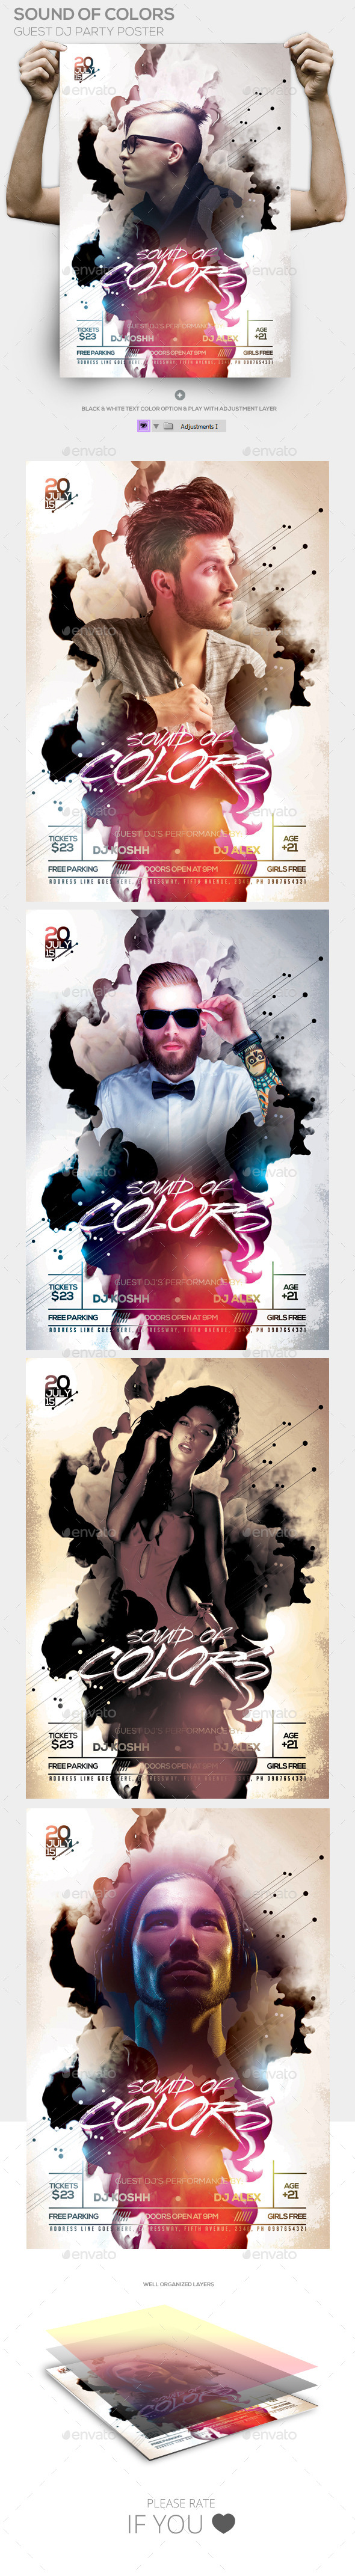 GraphicRiver Sound Of Colors Guest Dj Poster 11847184